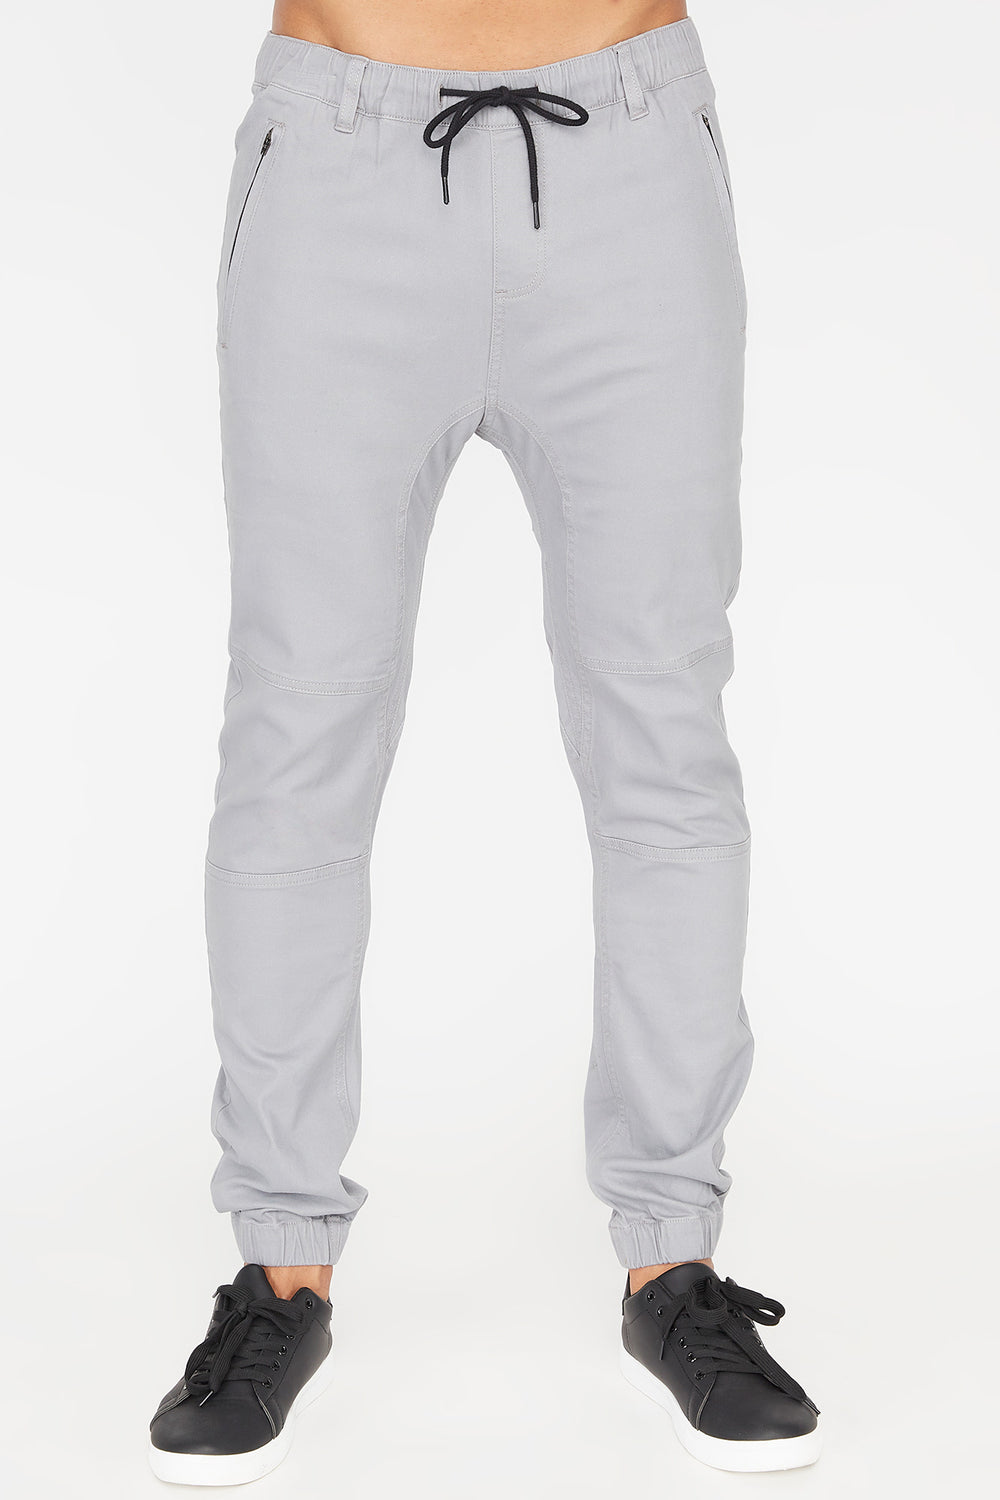 Zoo York Mens Solid Twill Zip Jogger Heather Grey